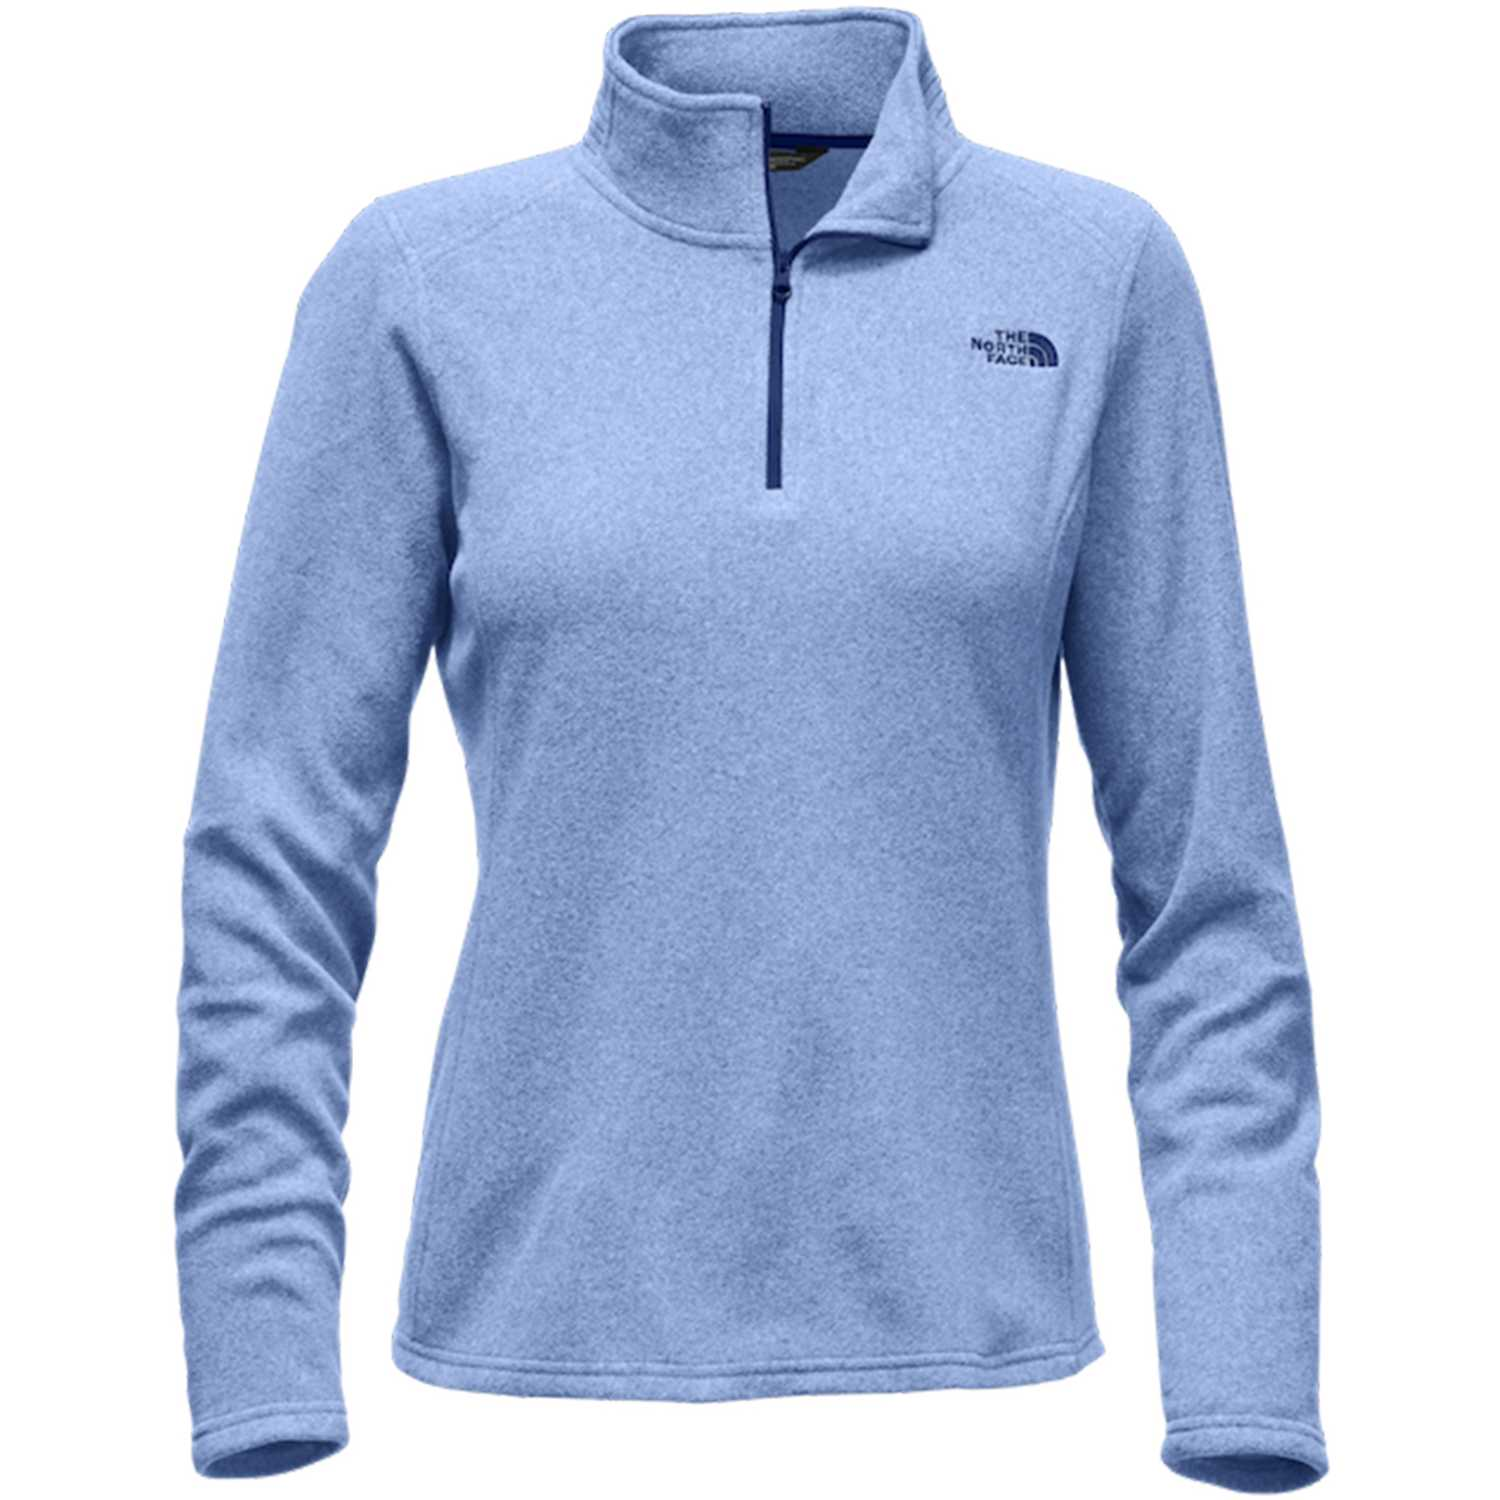 The North Face w glacier 1/4 zip Celeste Pullovers